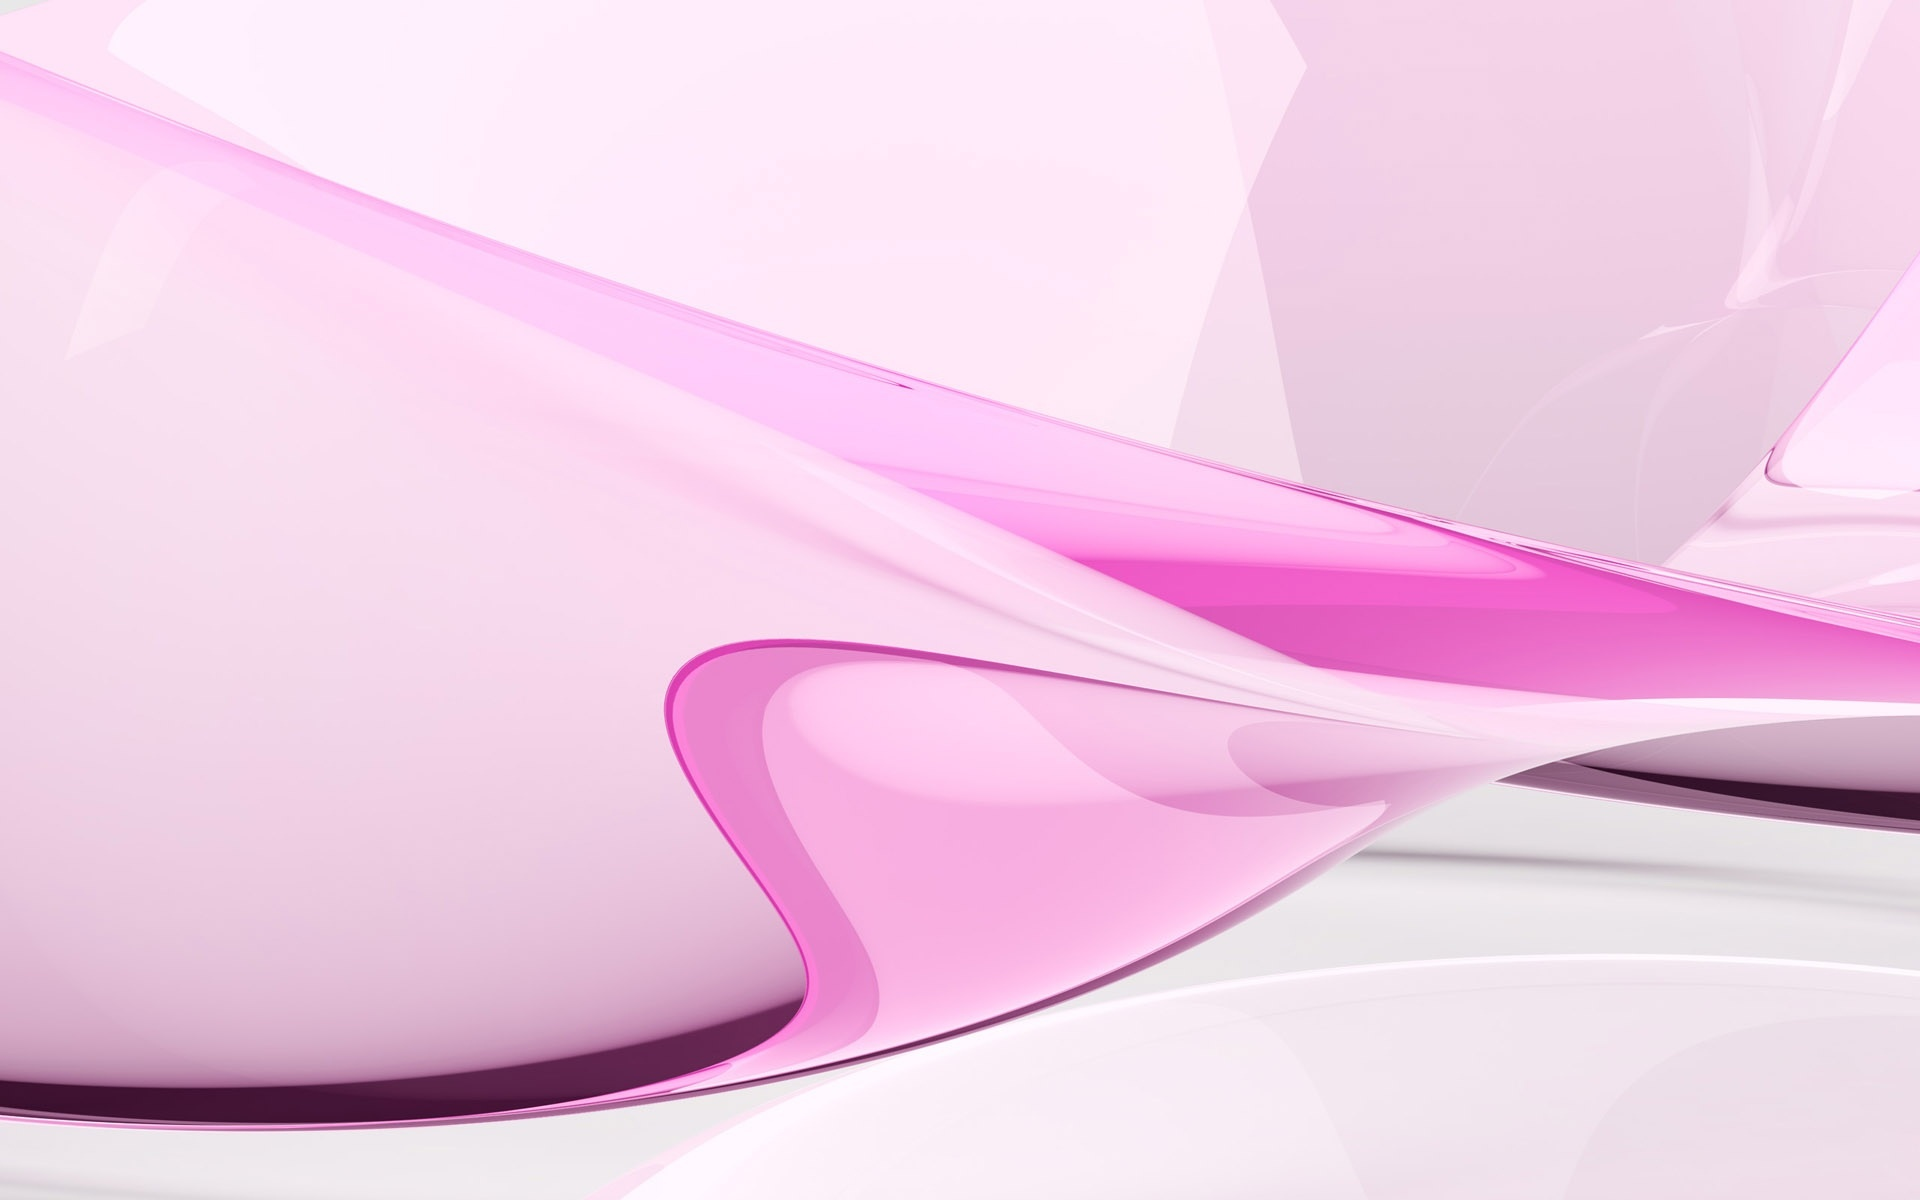 abstract wallpapers hd pink